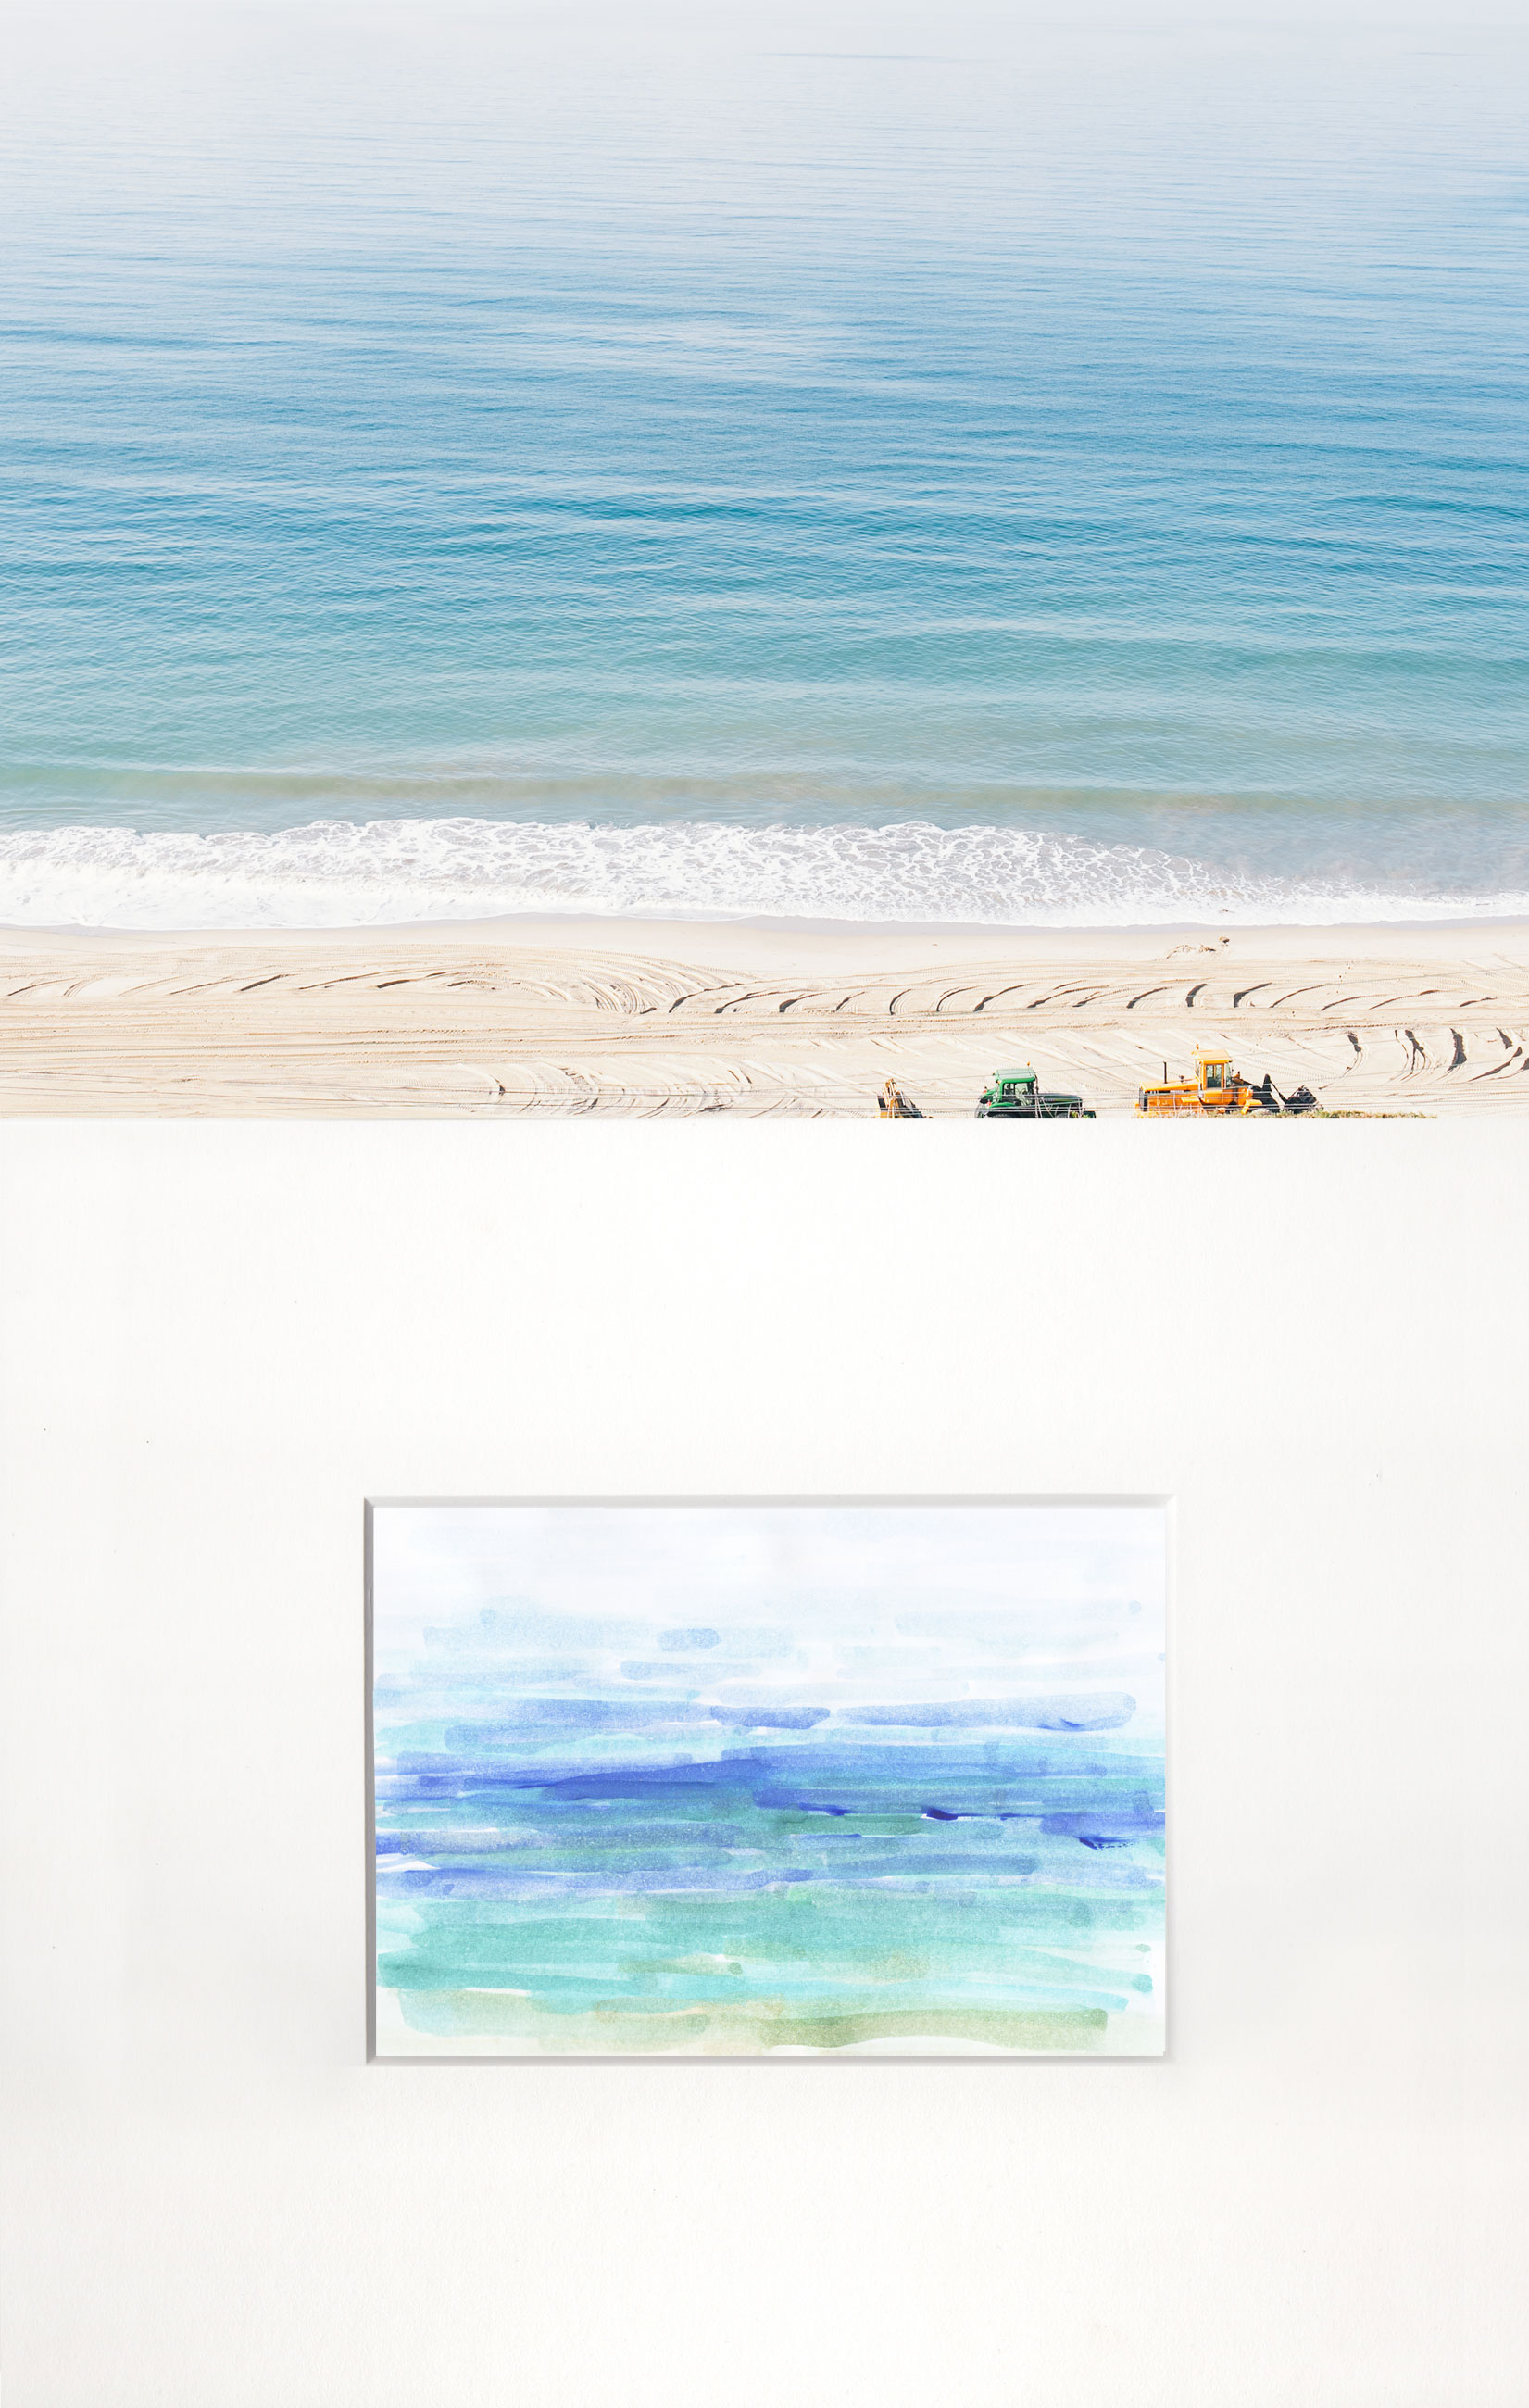 Pacific Ocean with Tractors by Naomi Yamada